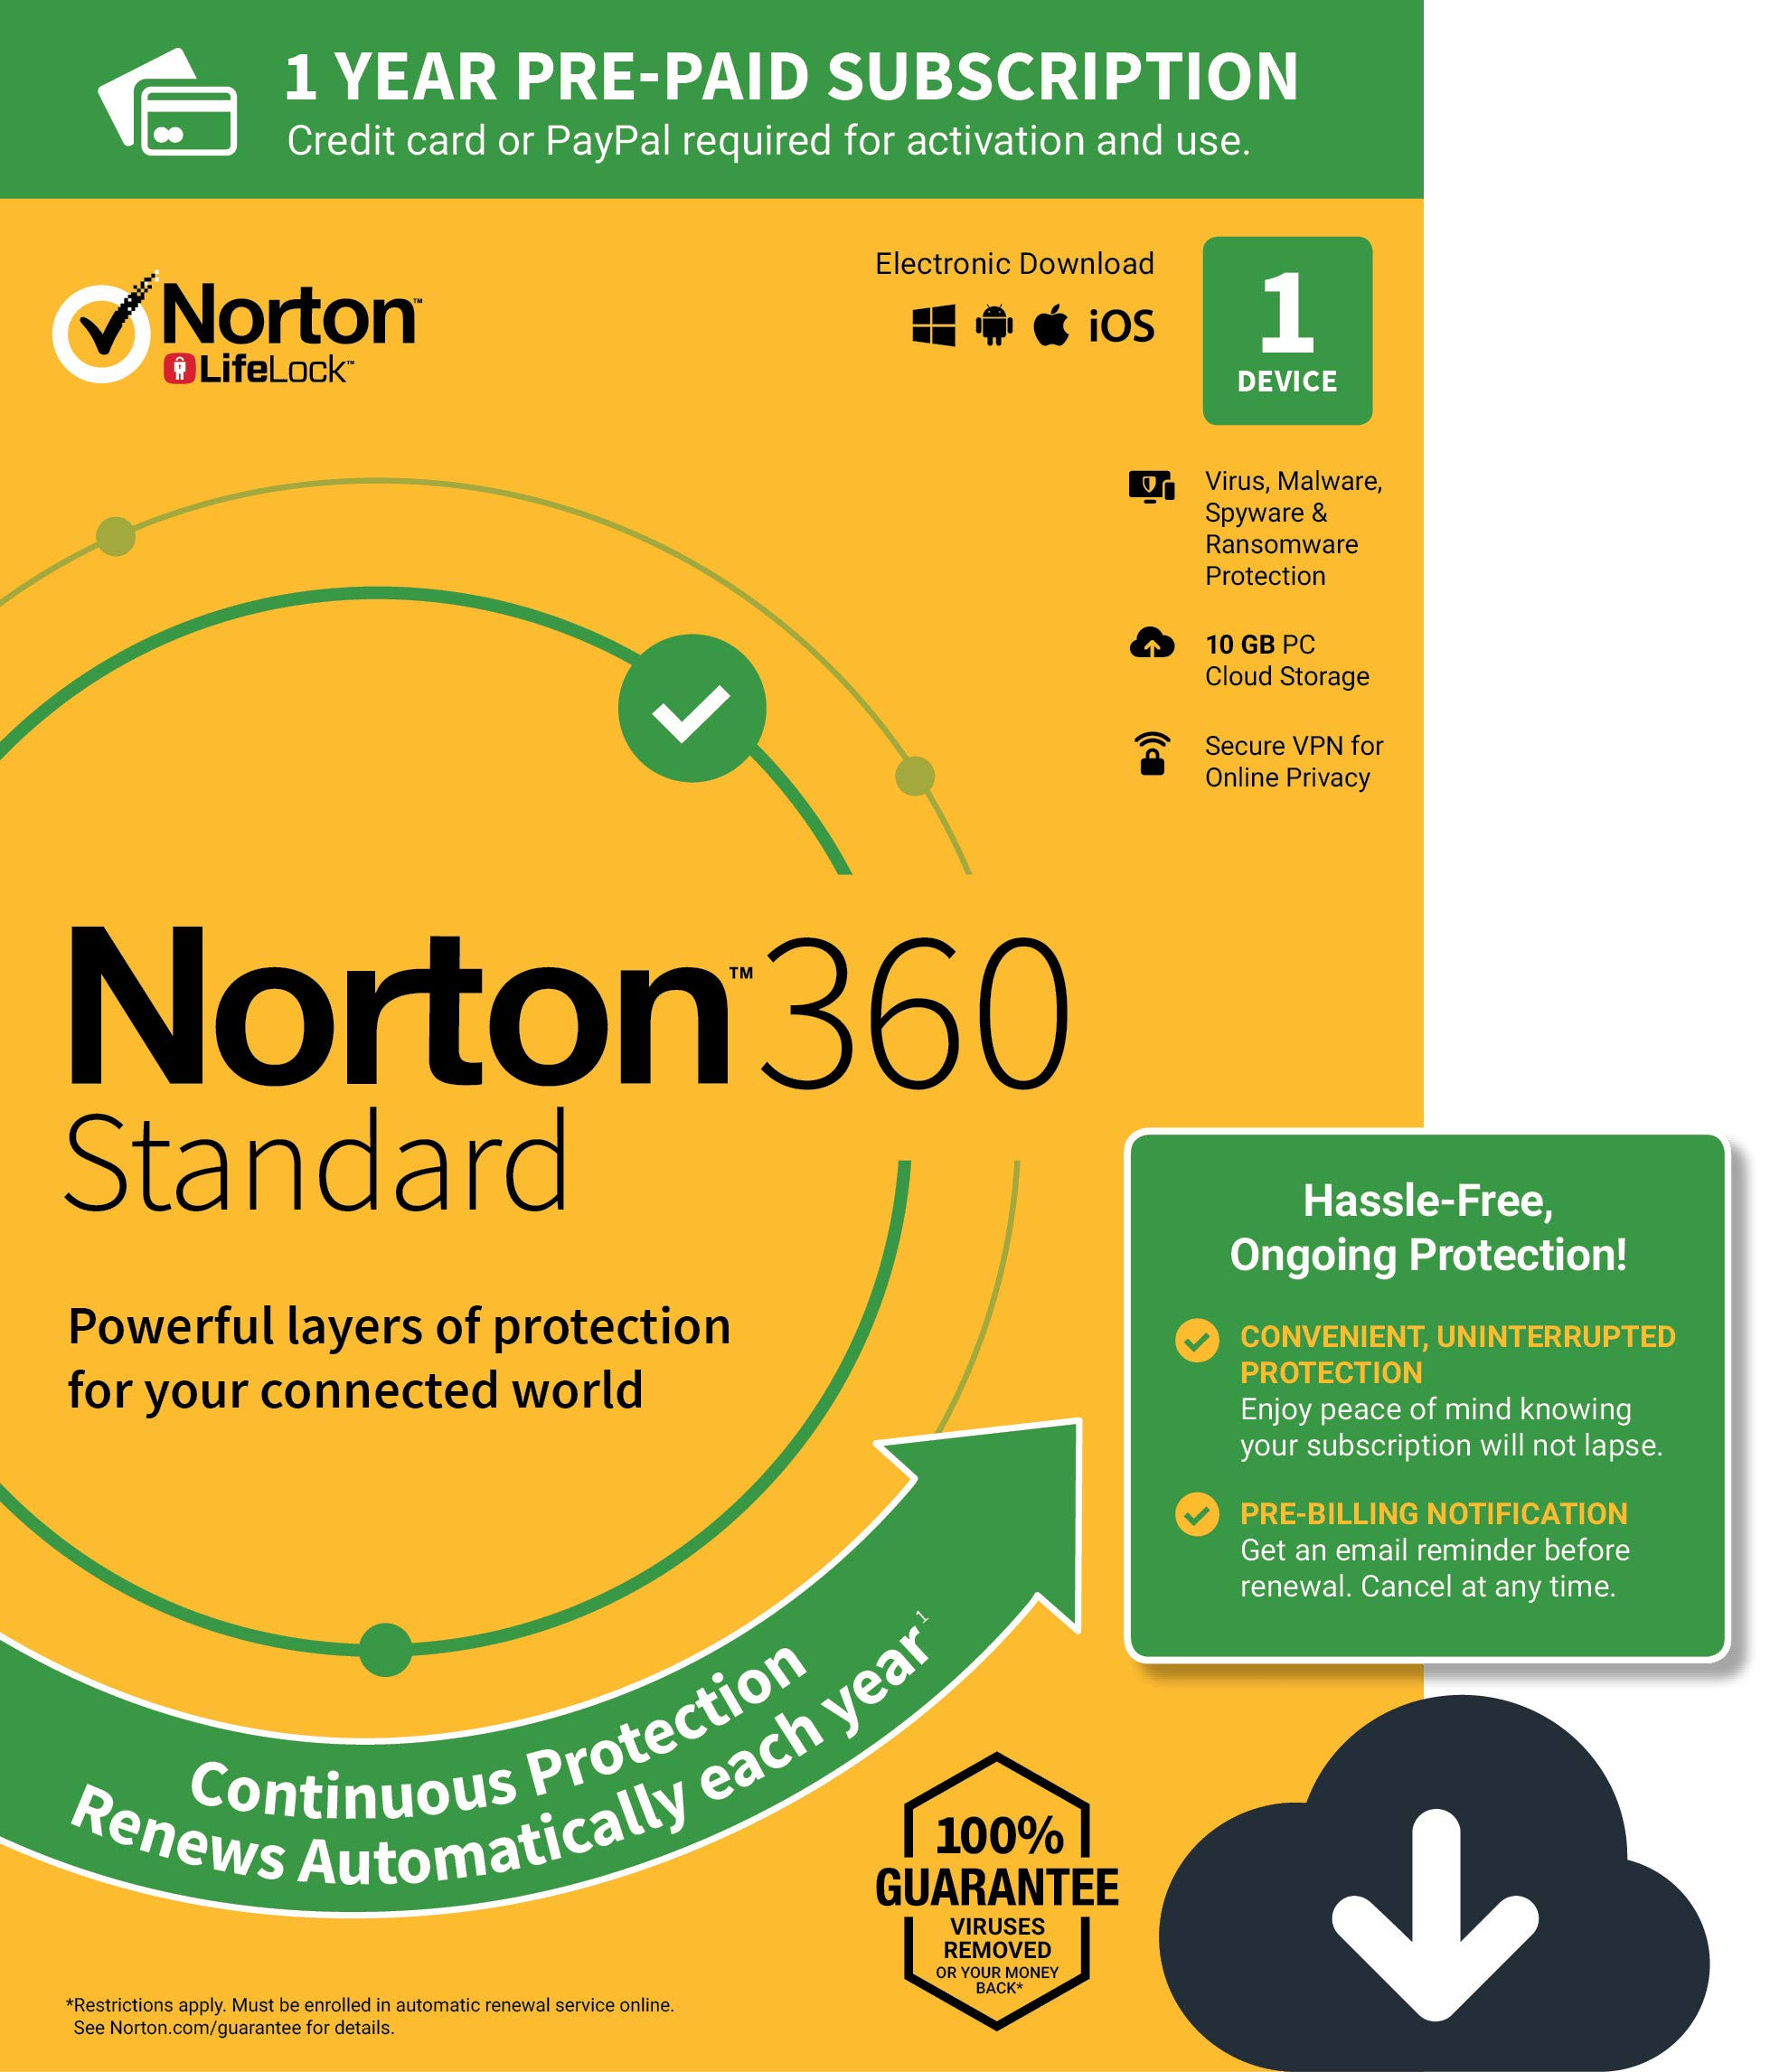 NEW Norton 360 Standard - Antivirus software for 1 Device with Auto Renewal - Includes VPN, PC  Cloud Backup & Dark Web Monitoring powered by LifeLock [PC/Mac Download] by Symantec